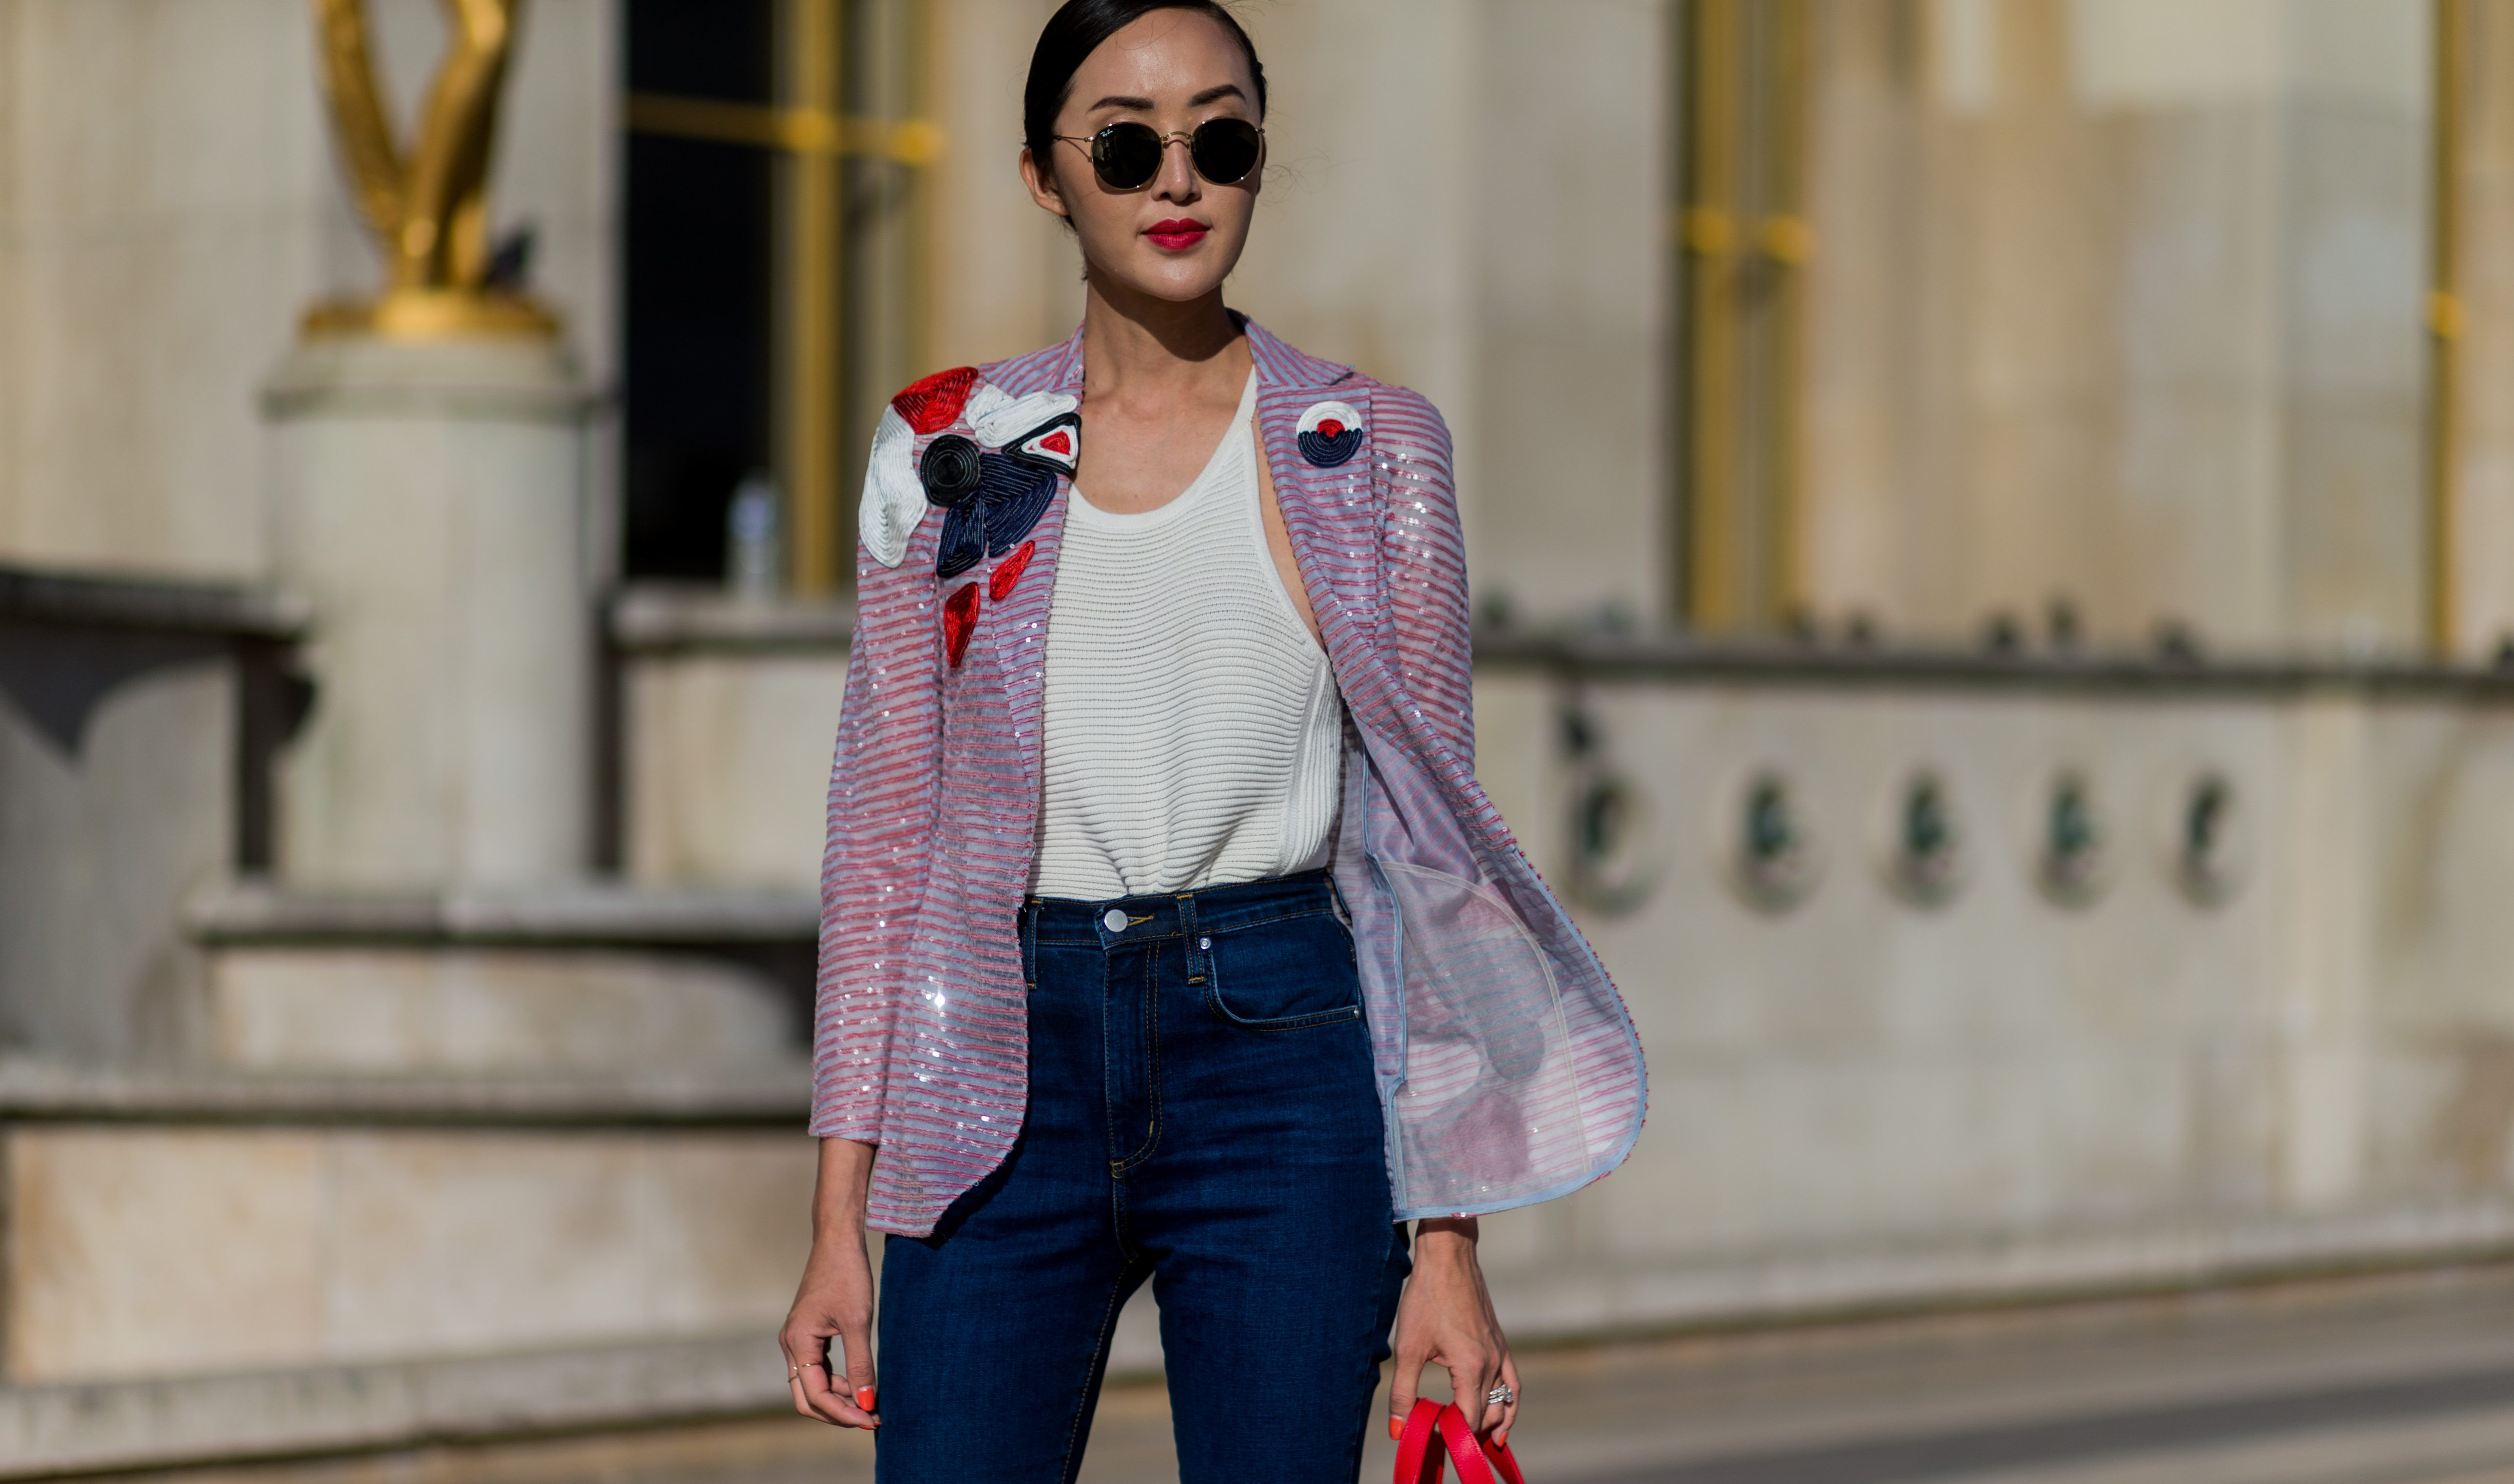 Lucky Colours To Wear On Chinese New Year 2018 According To Your Chinese Zodiac